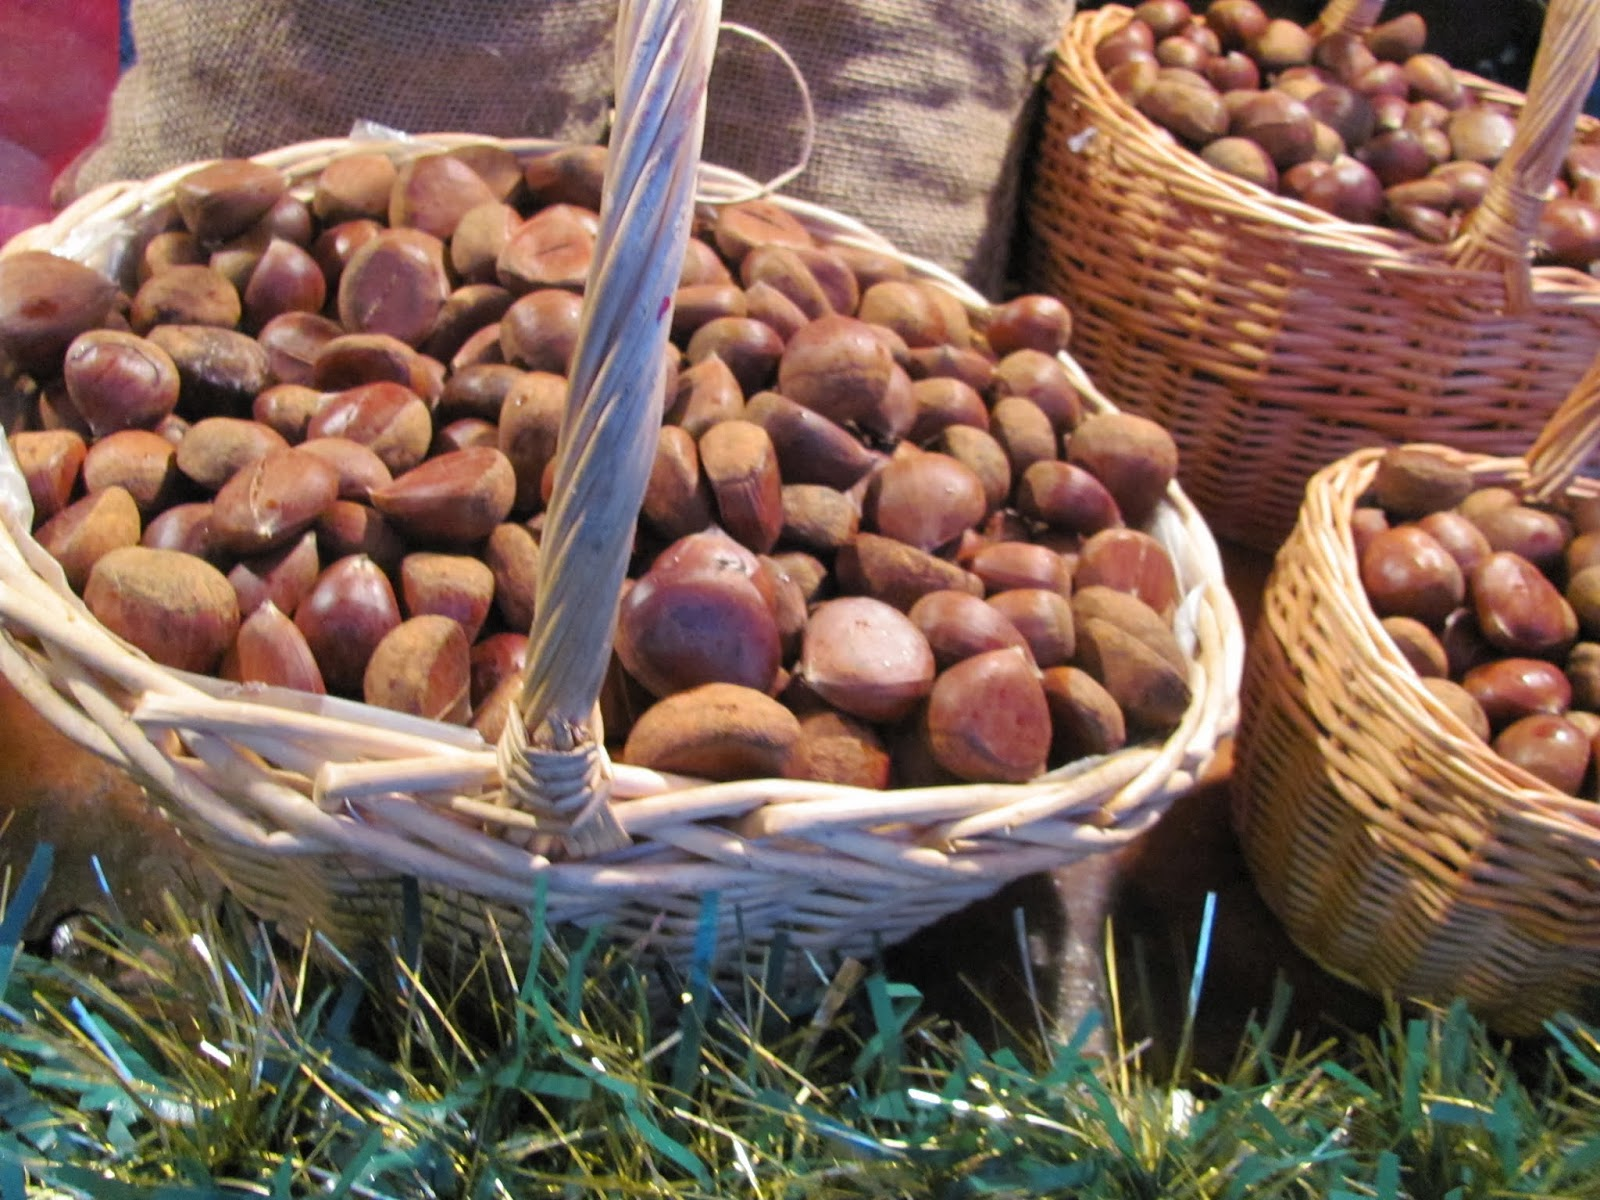 Chestnuts in baskets in a chestnut cart